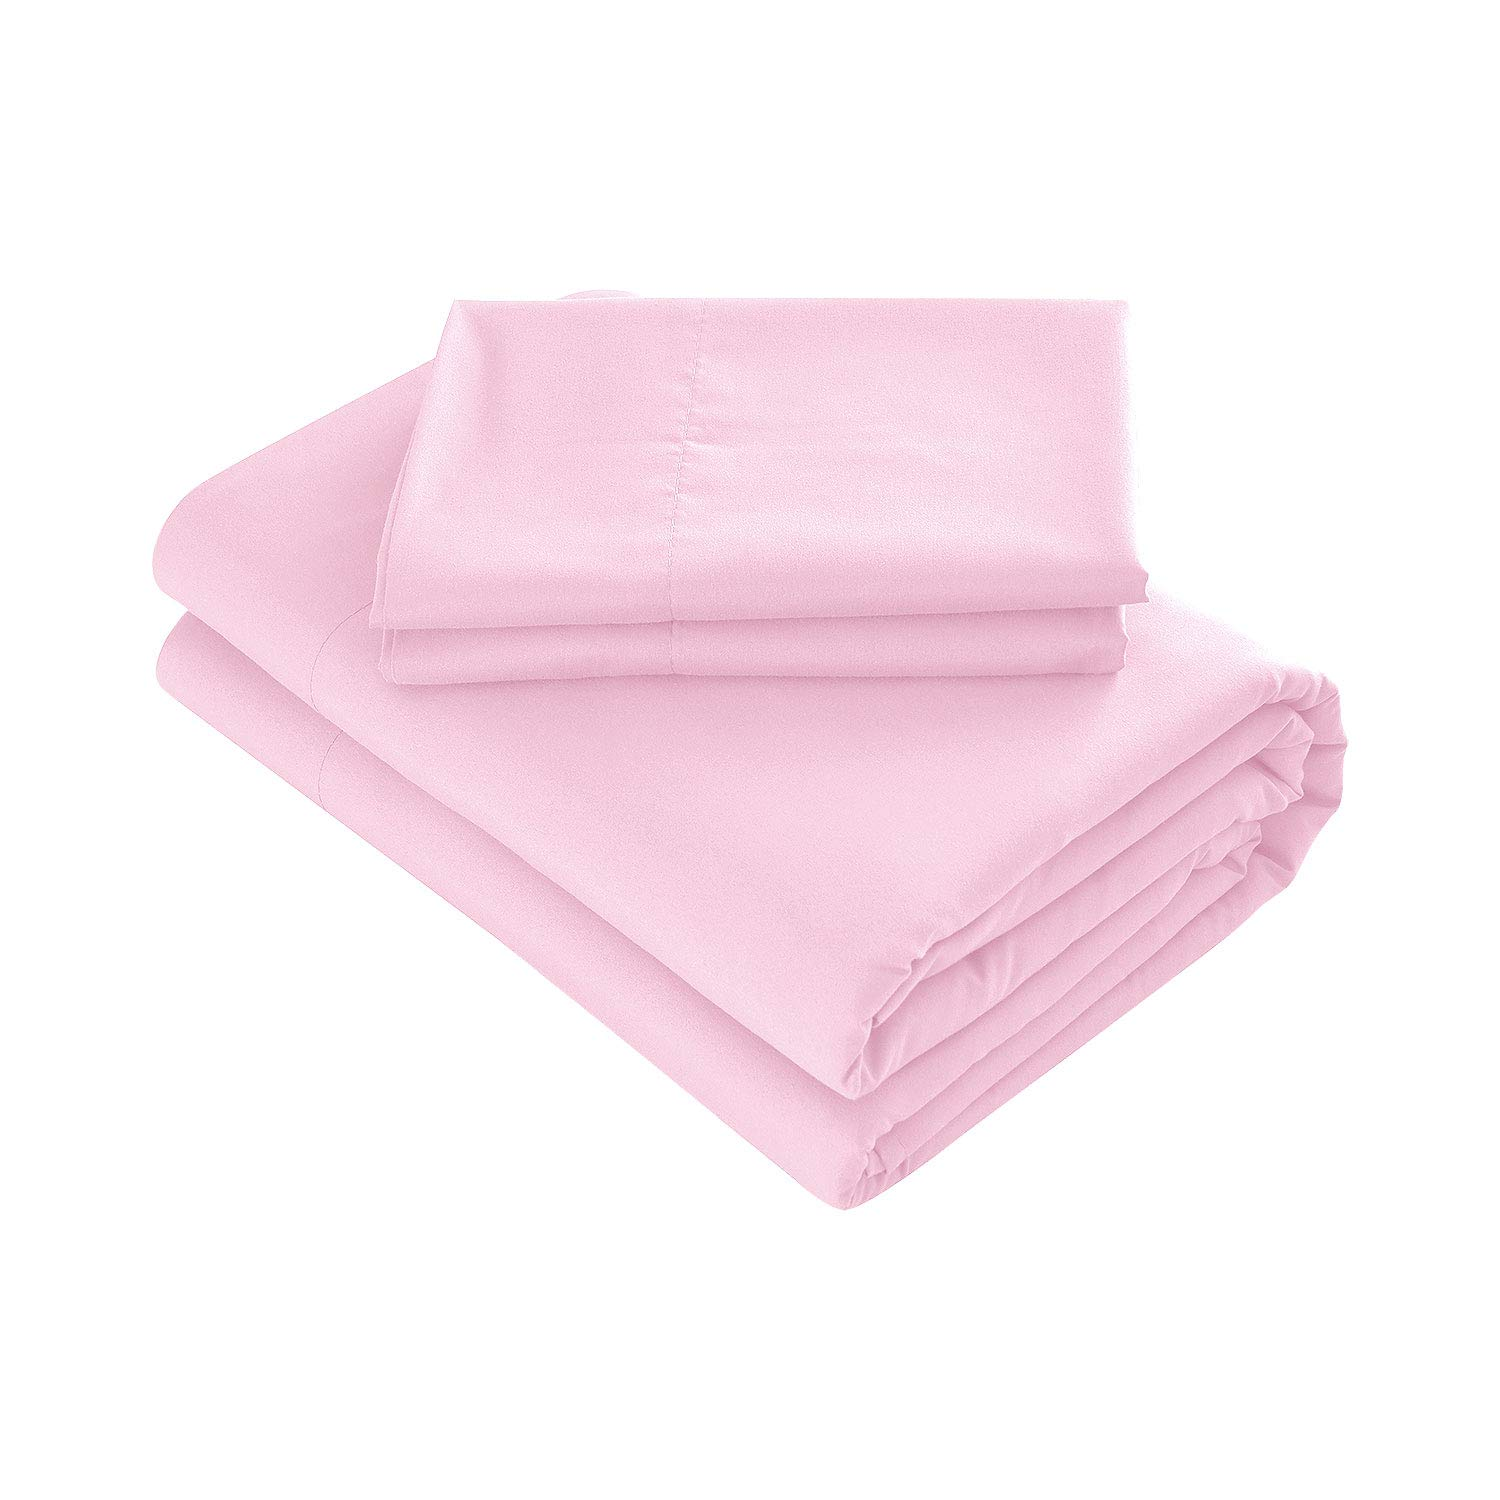 Prime Bedding Bed Sheets - 4 Piece Full Size Sheets, Deep Pocket Fitted Sheet, Flat Sheet, Pillow Cases - Light Pink